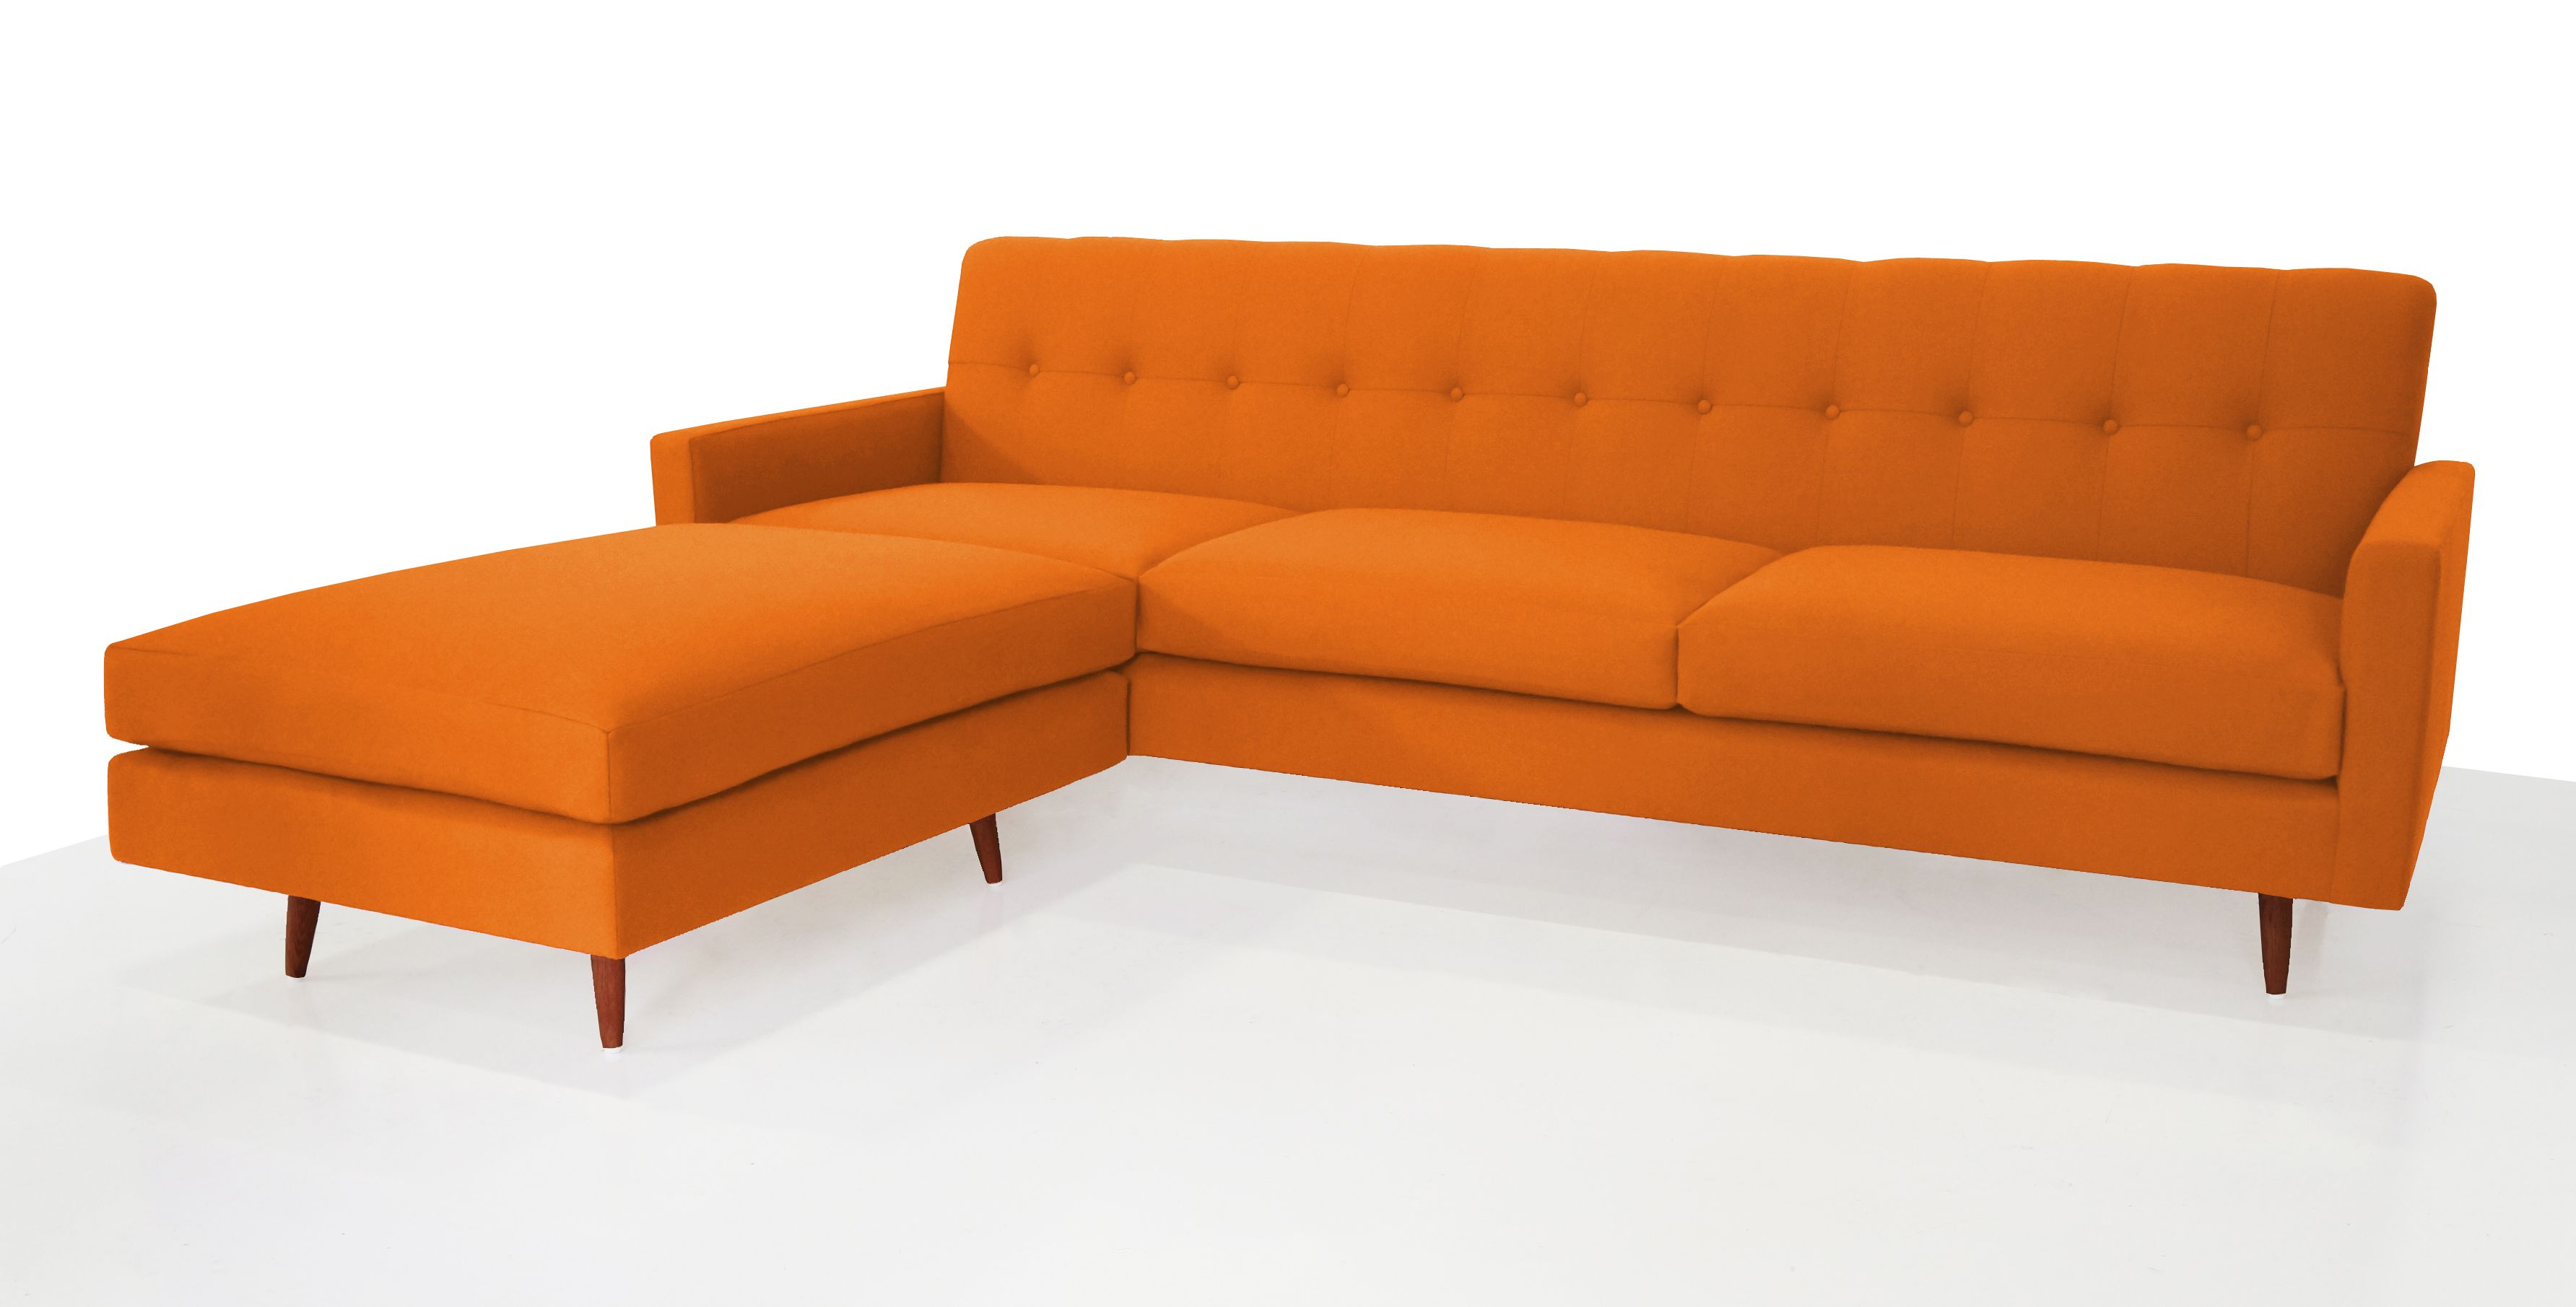 Ekla Home Safe And Sustainable Sofas Chairs